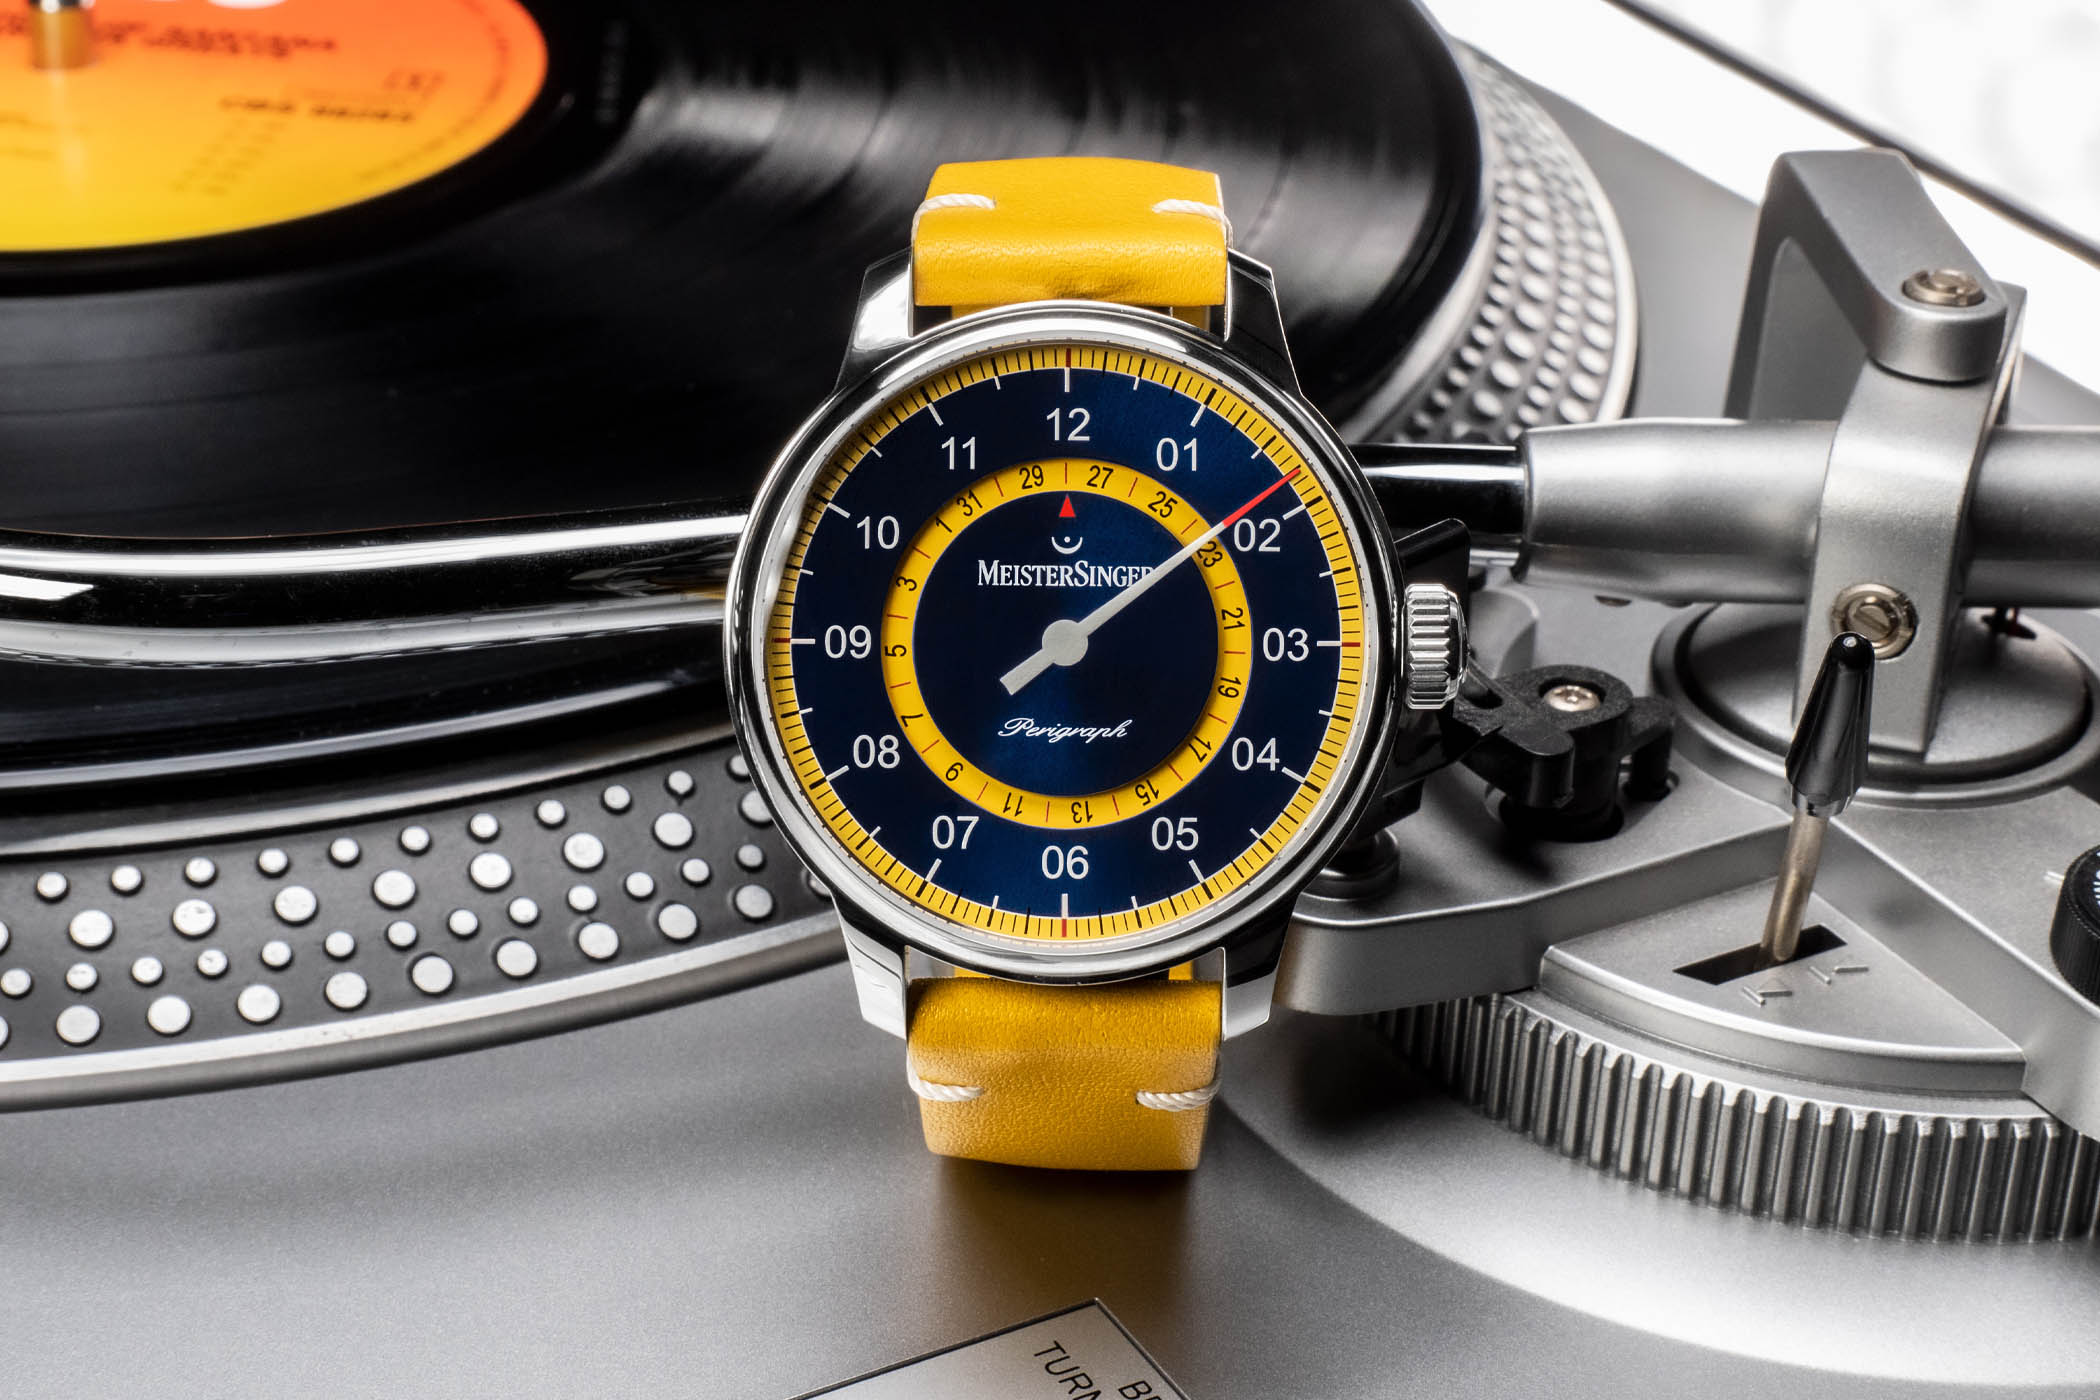 MeisterSinger Perigraph Mellow Yellow Limited Edition